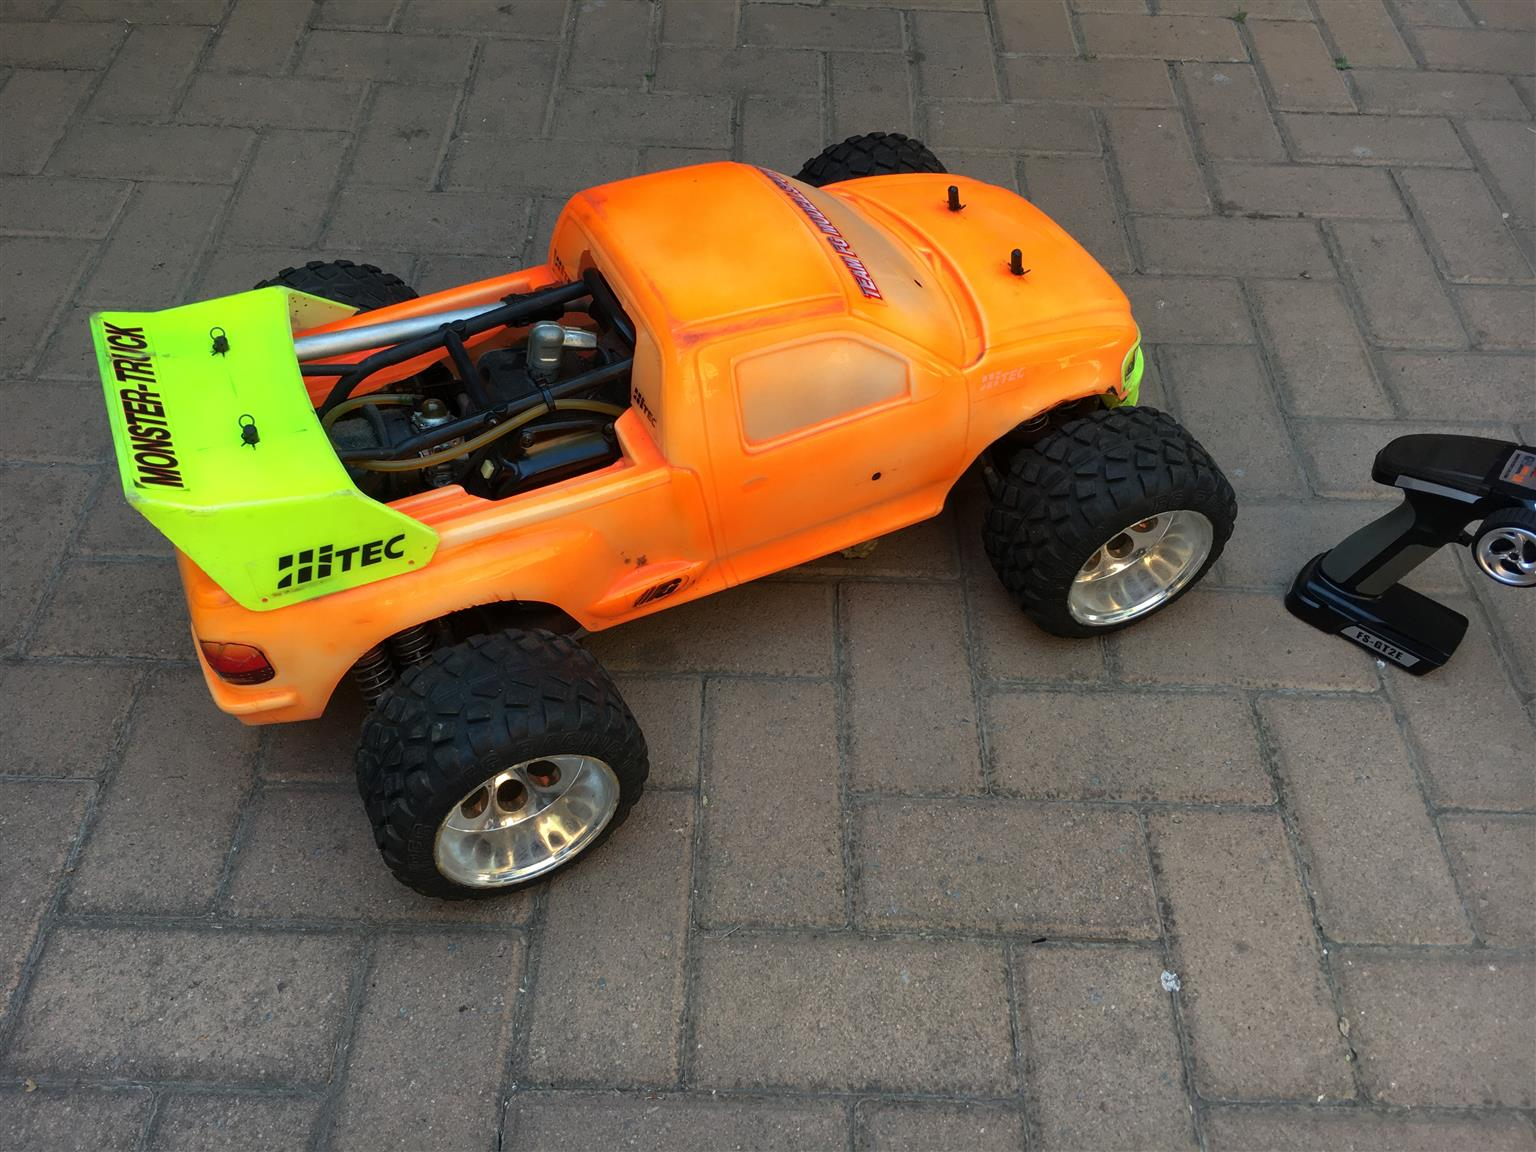 1:25 scale RC